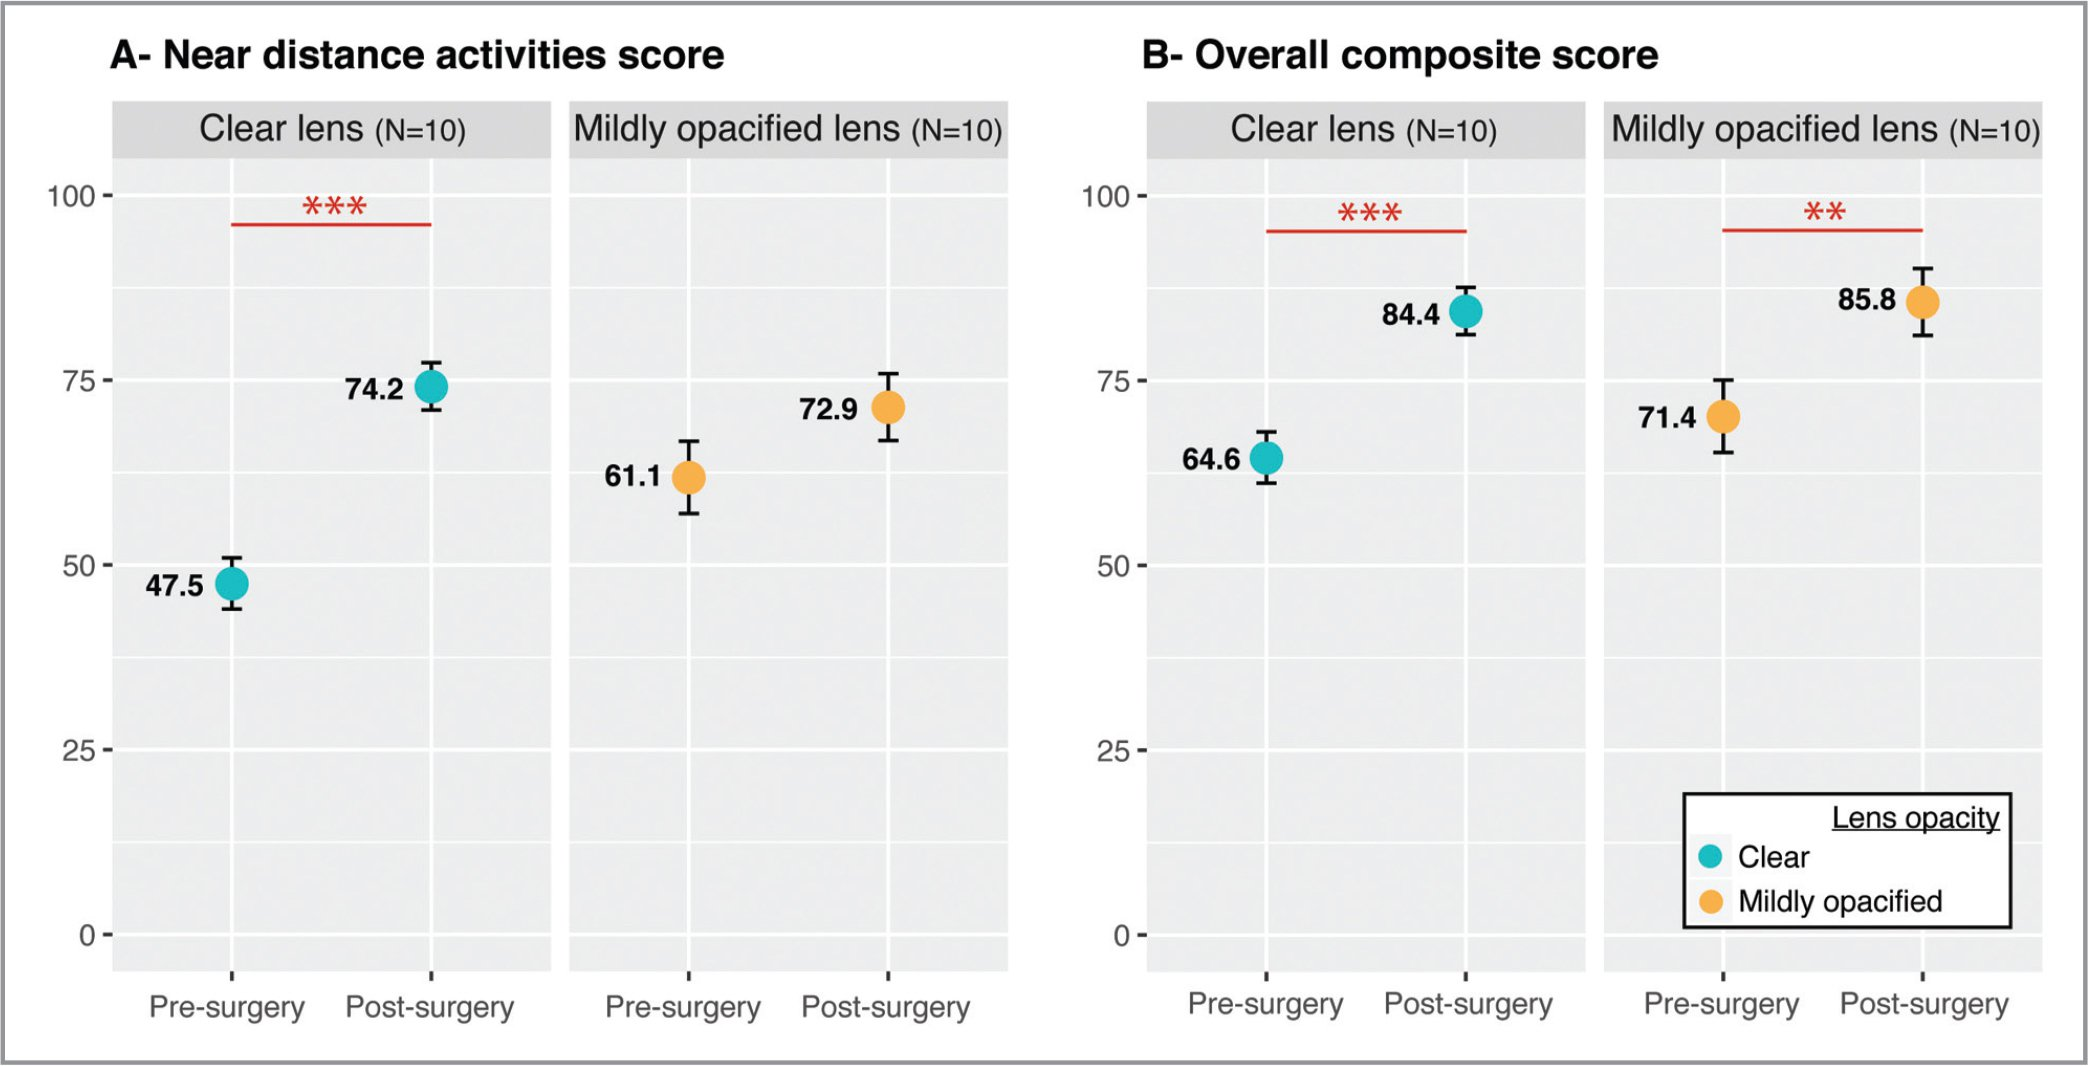 Pre- and postoperative National Eye Institute Visual Function Questionnaire scores grouped by lens opacity status. Points show the mean estimates for the near activity sub-score (A) and the overall composite score (B), both before and after surgery, as estimated by the mixed effects models, for patients with clear lenses in blue (n = 10) and patients with mildly opacified lenses in orange (n = 10). Error bars represent the 95% confidence intervals.